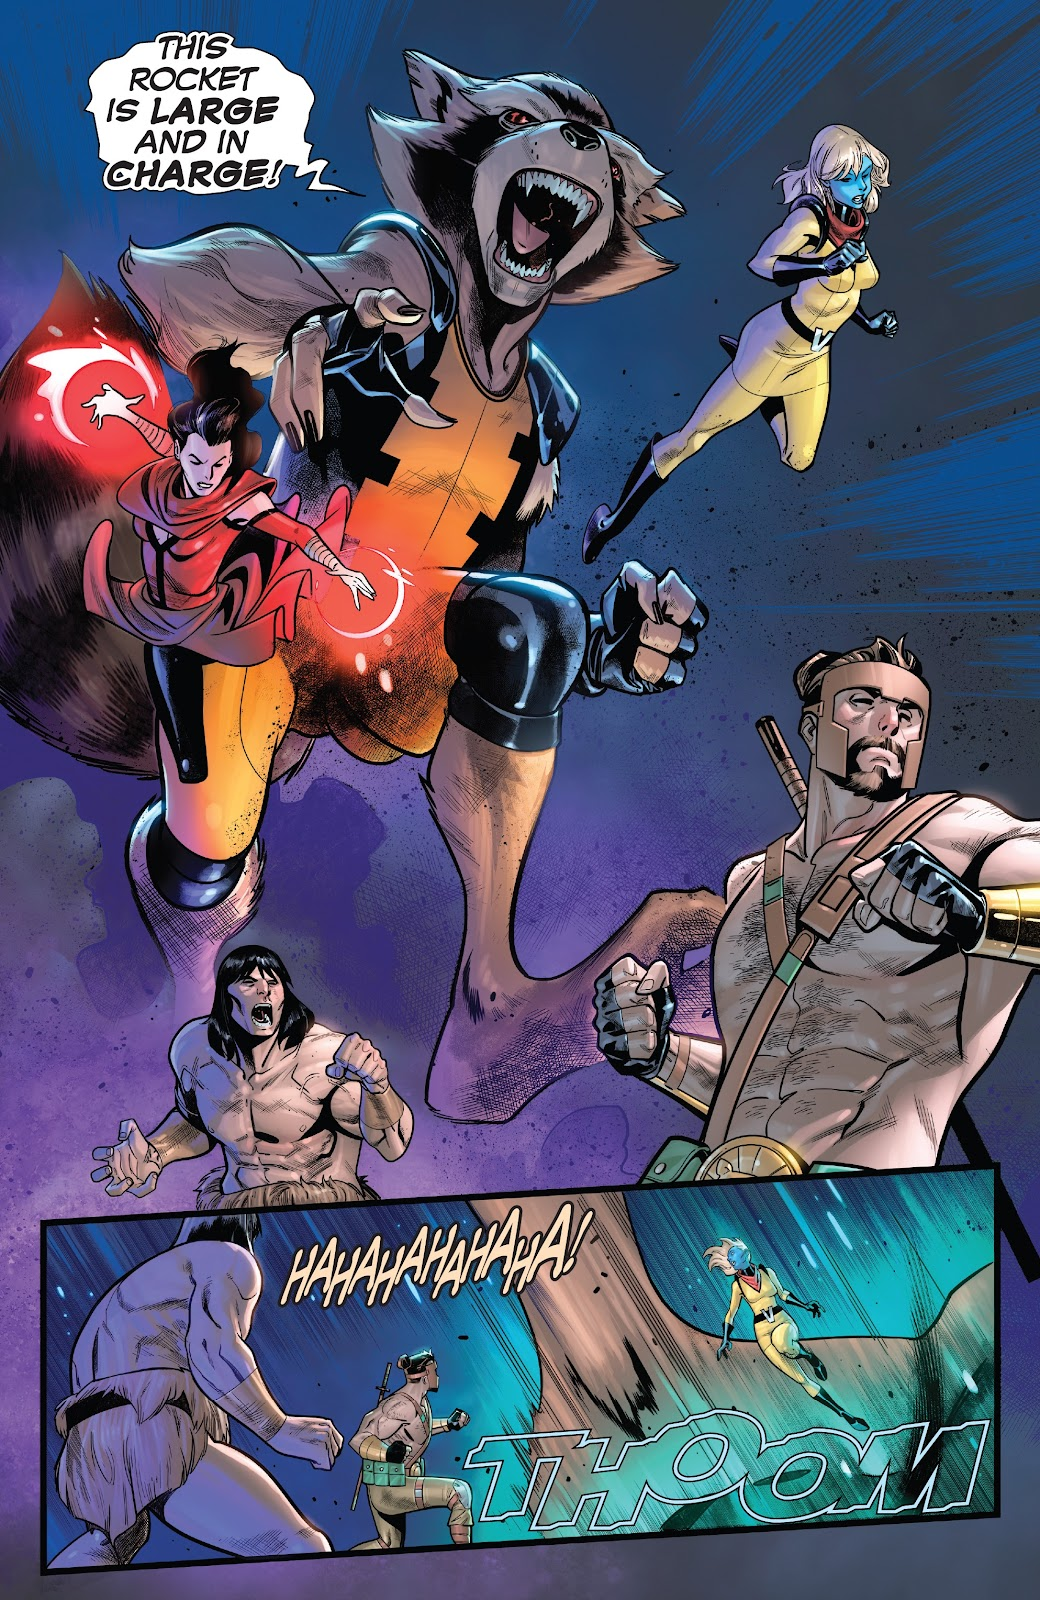 Read online Avengers No Road Home comic -  Issue #9 - 13